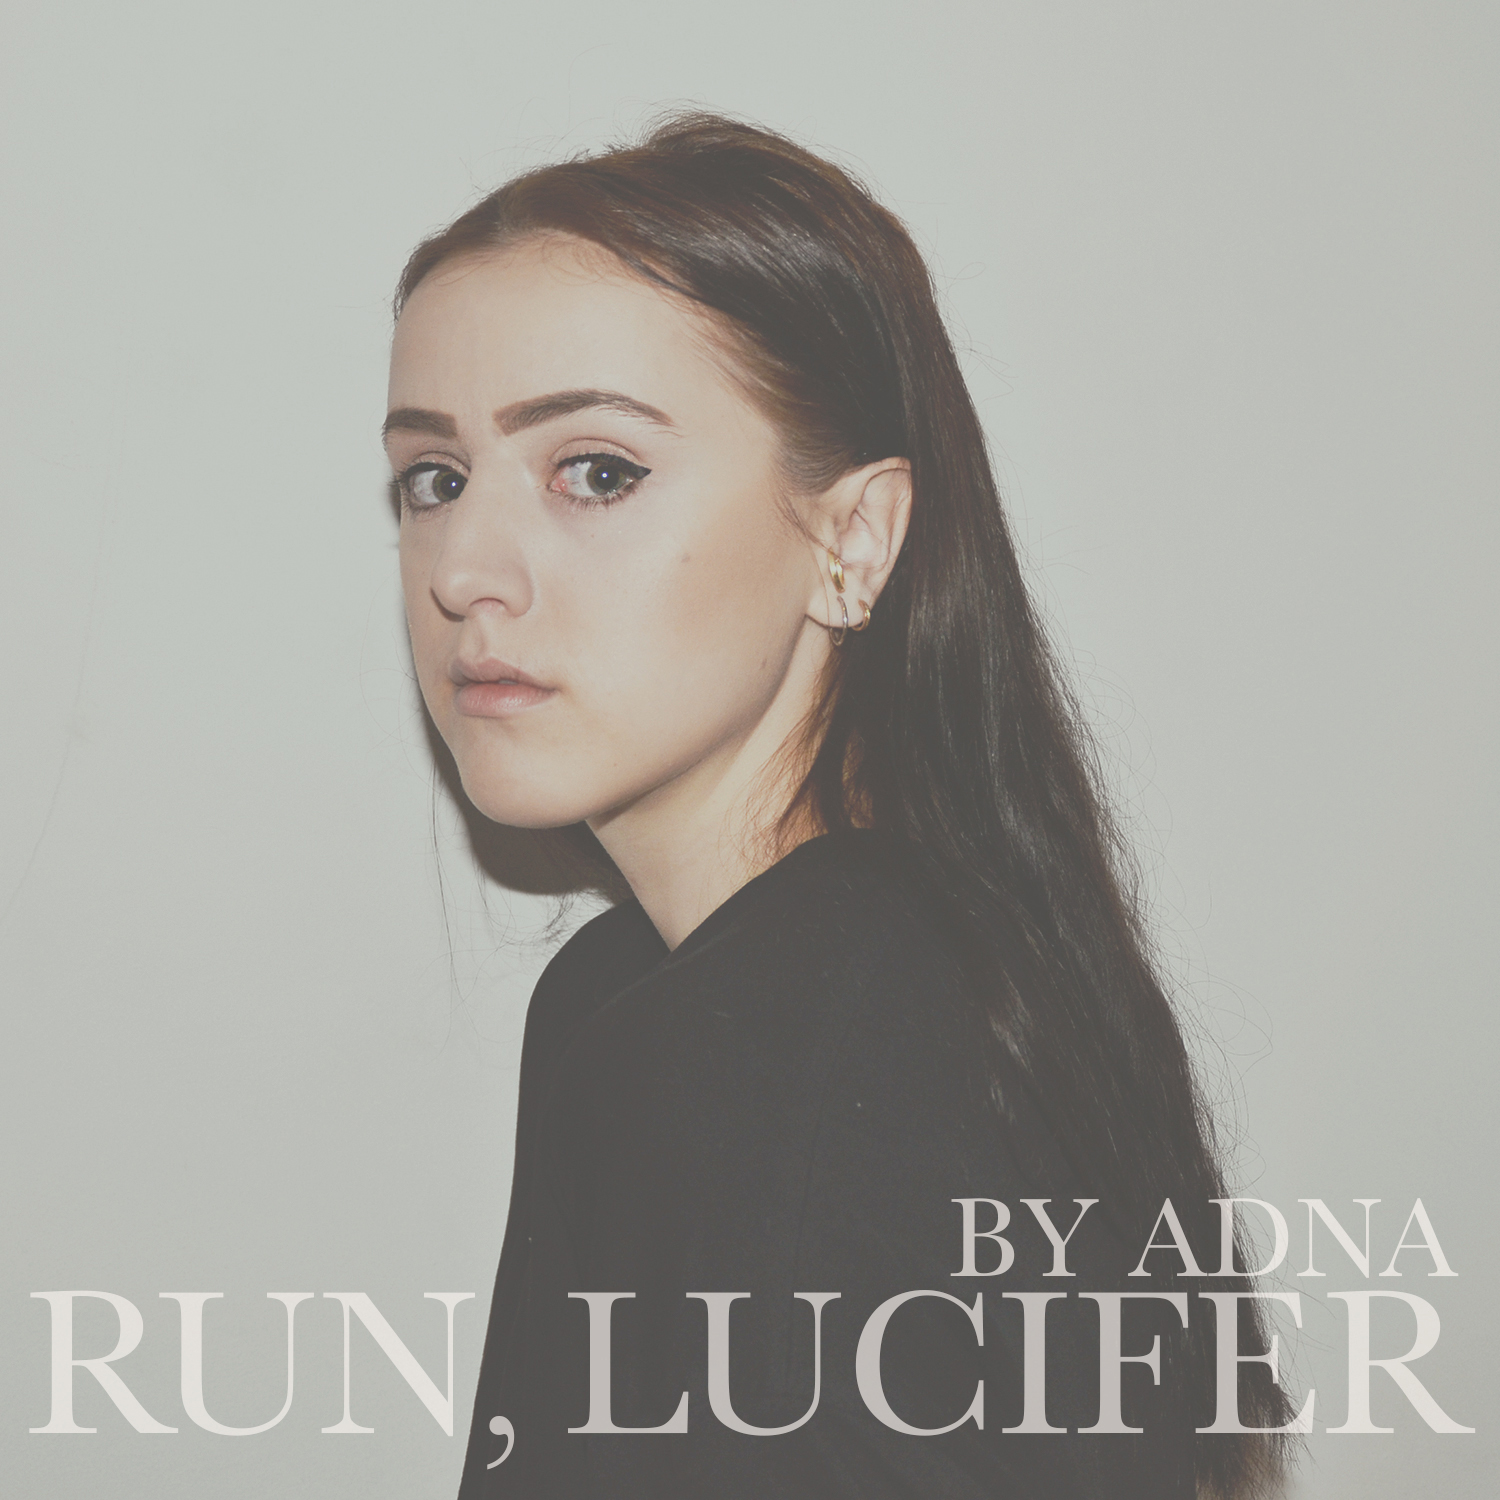 cover_album_-_run,lucifer_1500x1500.jpg